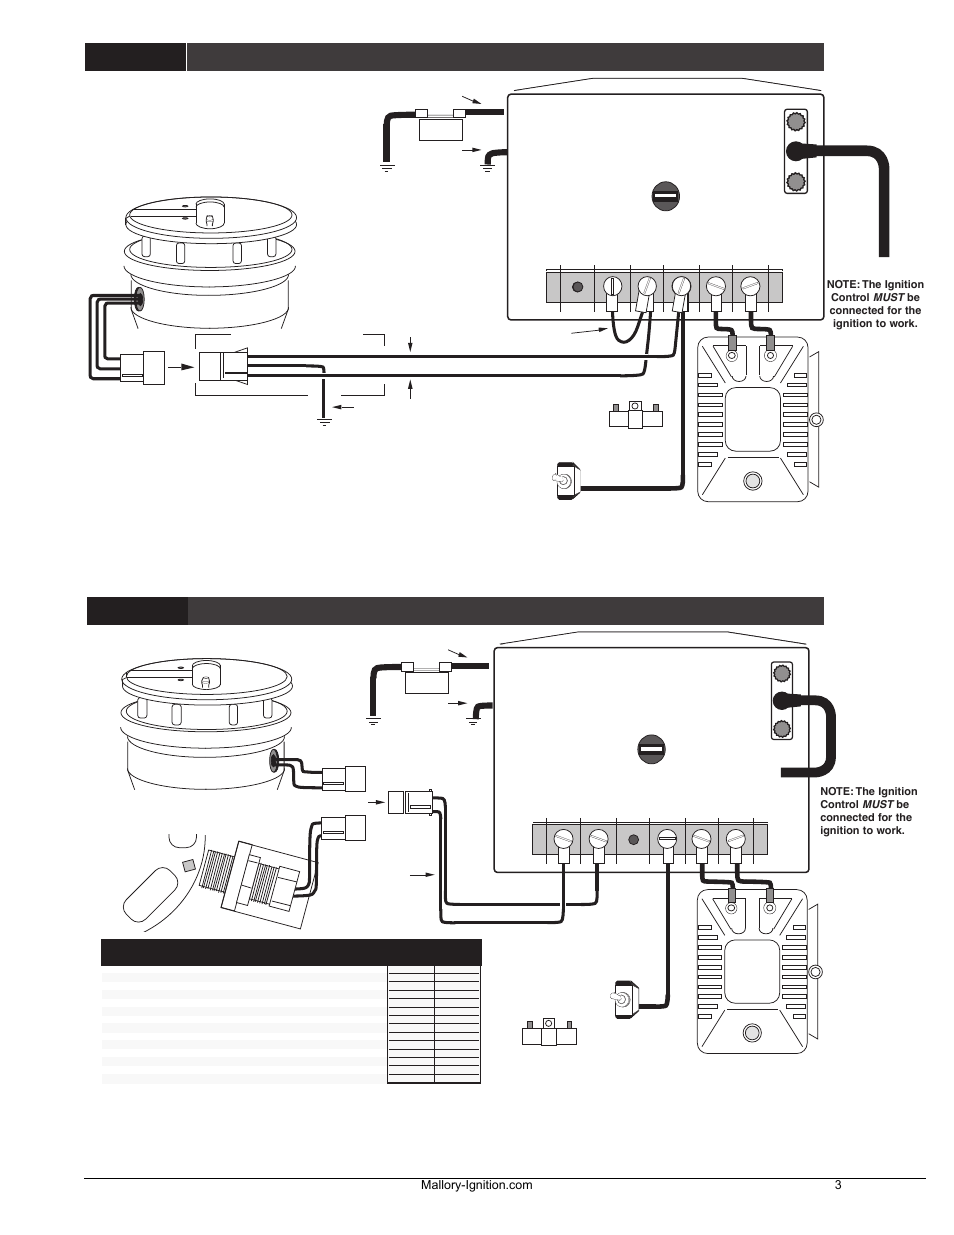 Mallory Unilite Wiring Diagram Mg | Wiring Liry on